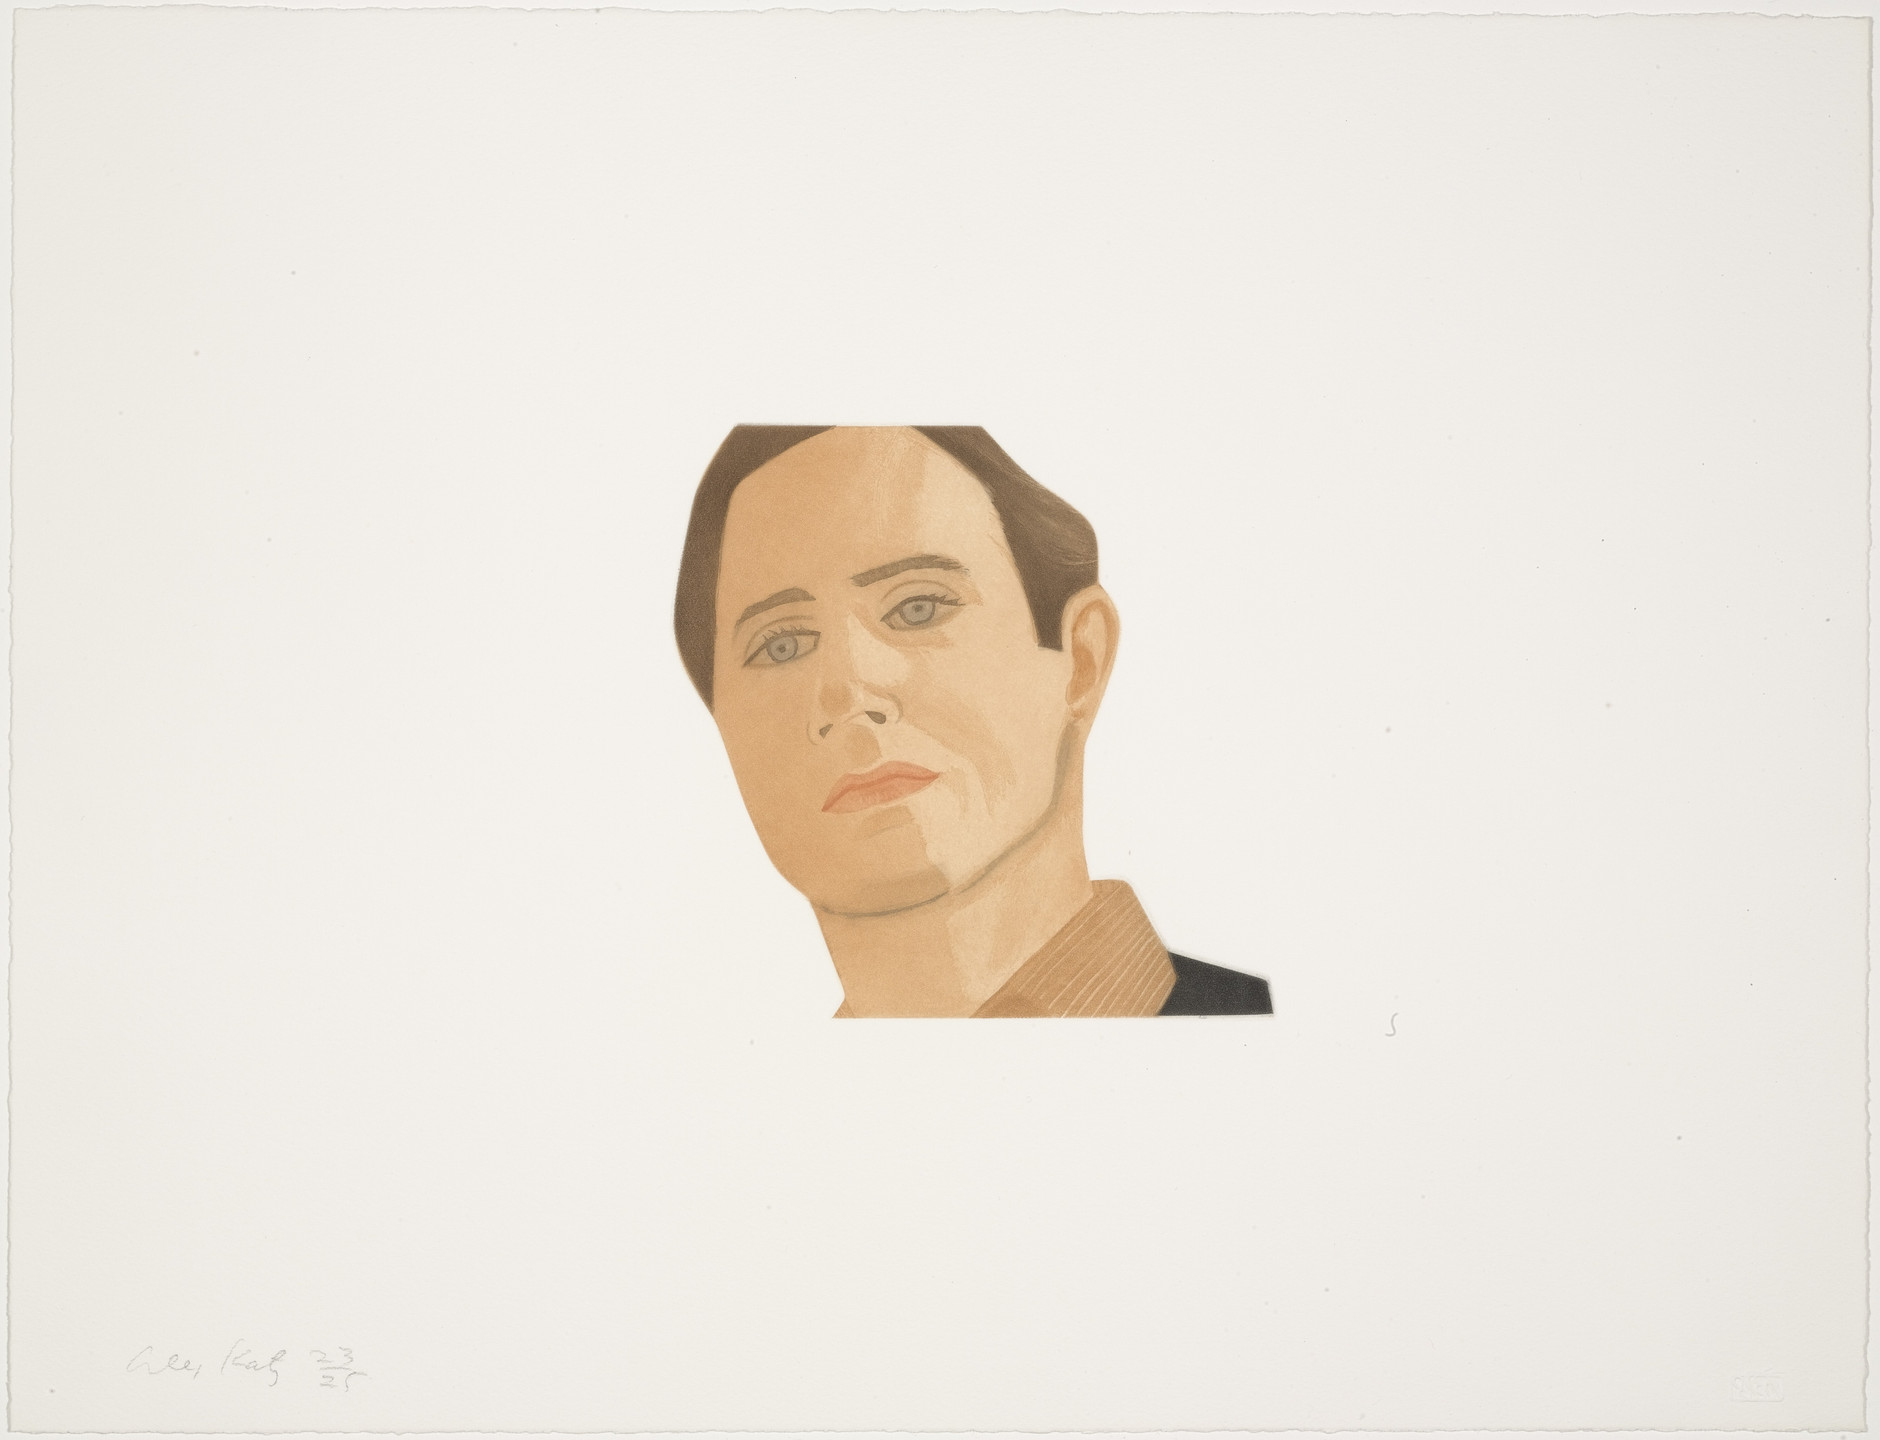 Alex Katz. Gerald Malanga from Face of the Poet. 1978